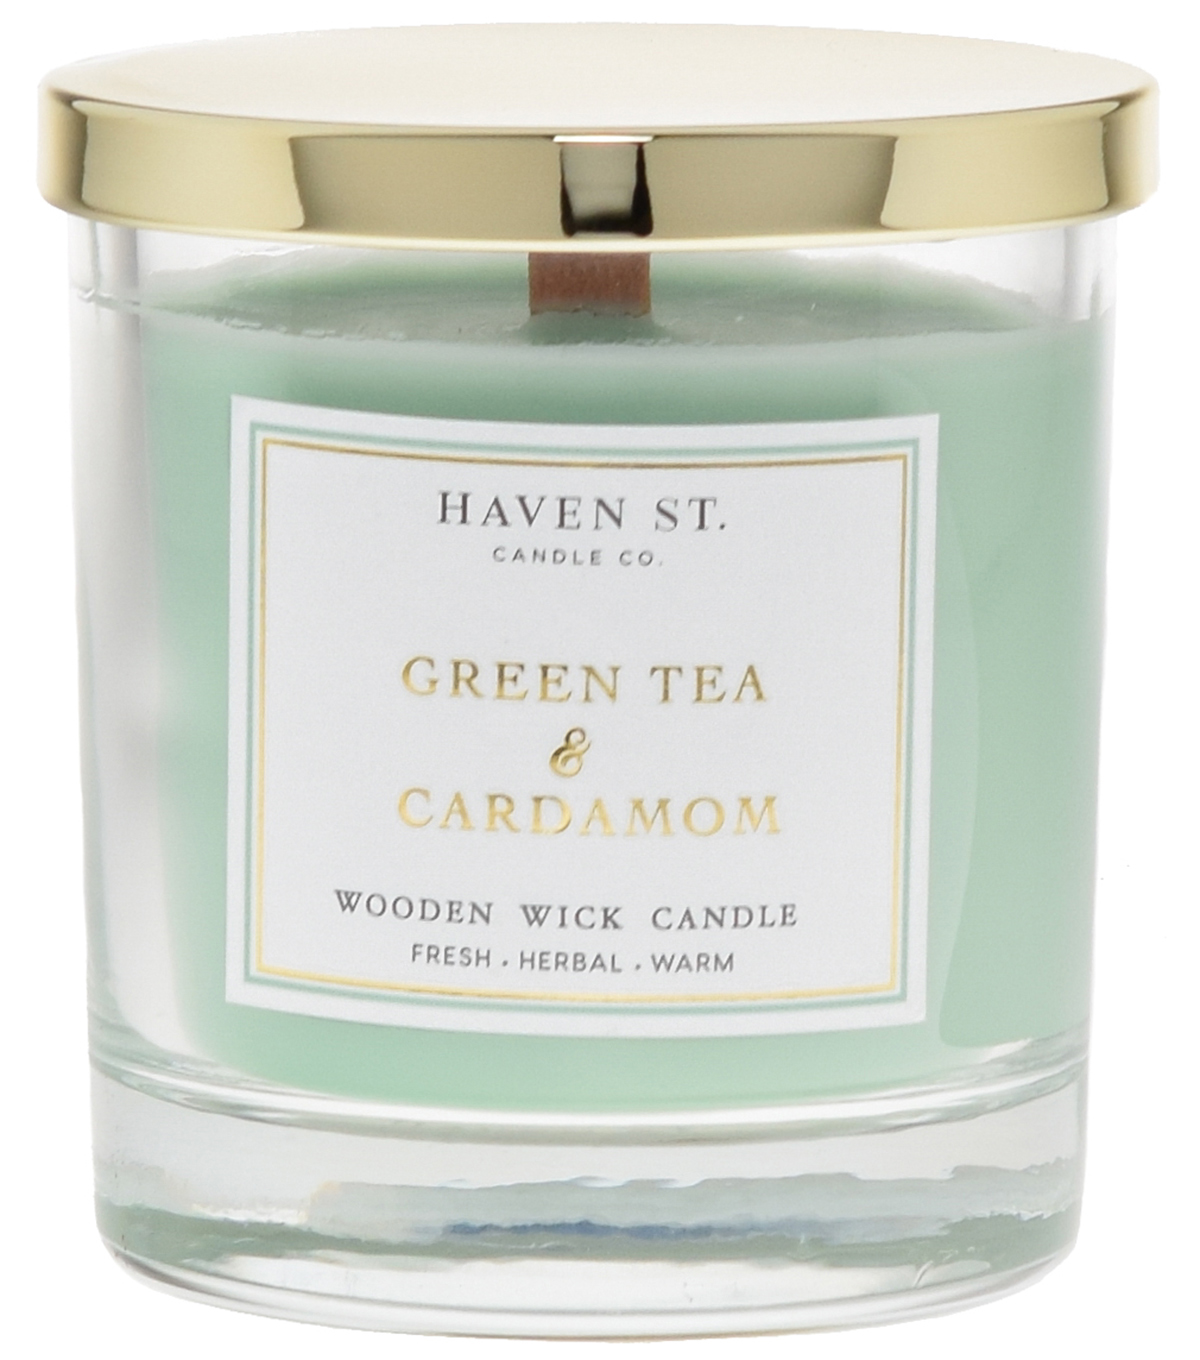 Haven St. Candle Co. 8 oz. Green Tea & Cardamom Scented Jar Candle